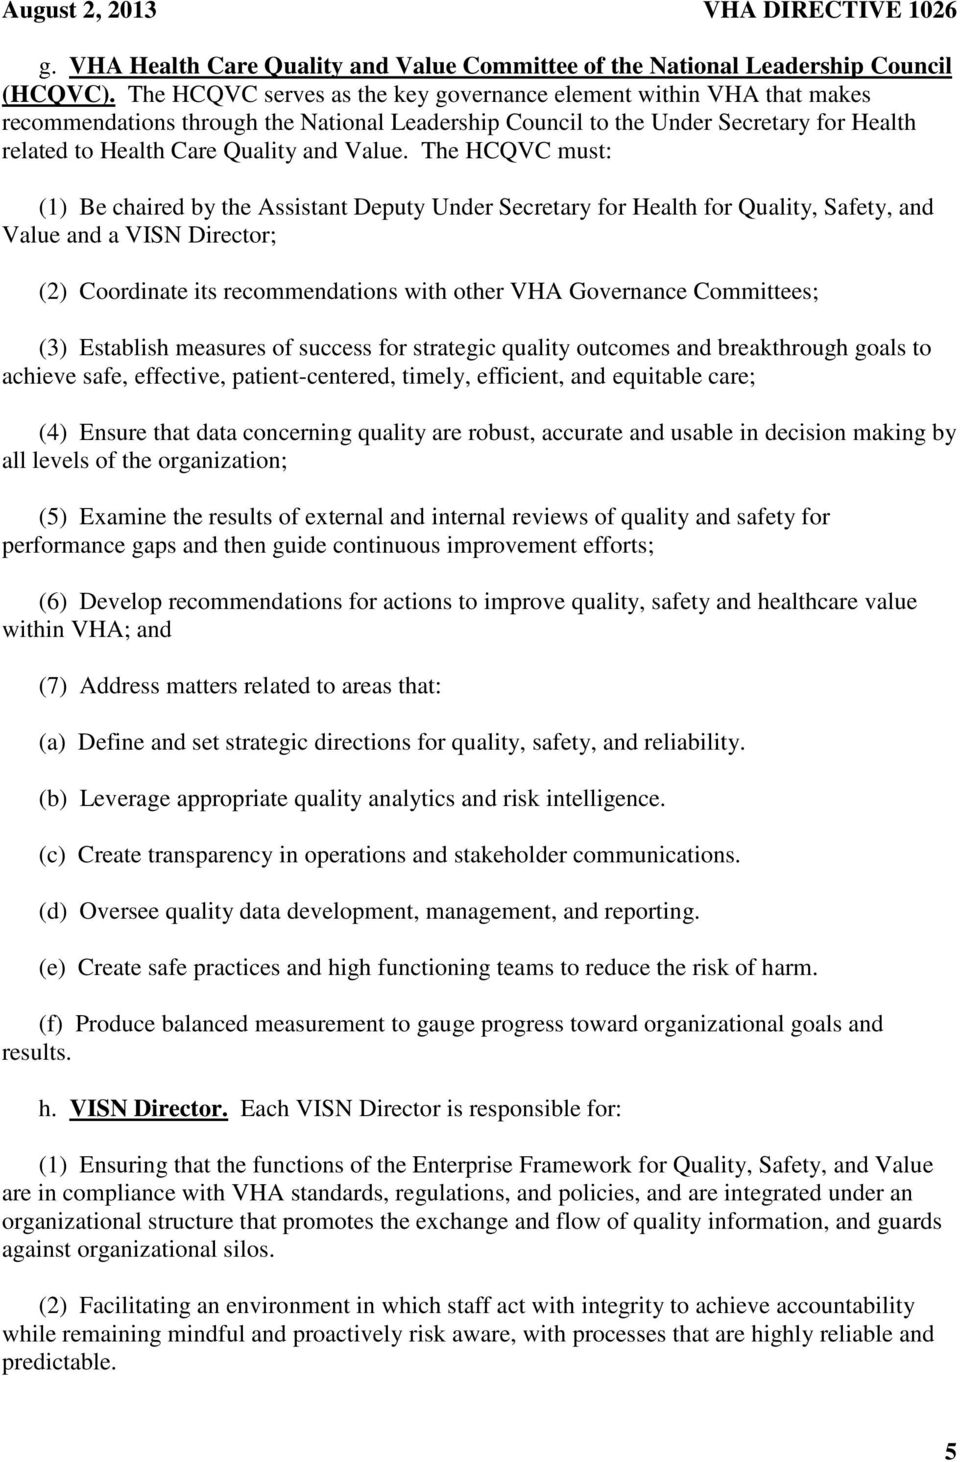 The HCQVC must: (1) Be chaired by the Assistant Deputy Under Secretary for Health for Quality, Safety, and Value and a VISN Director; (2) Coordinate its recommendations with other VHA Governance